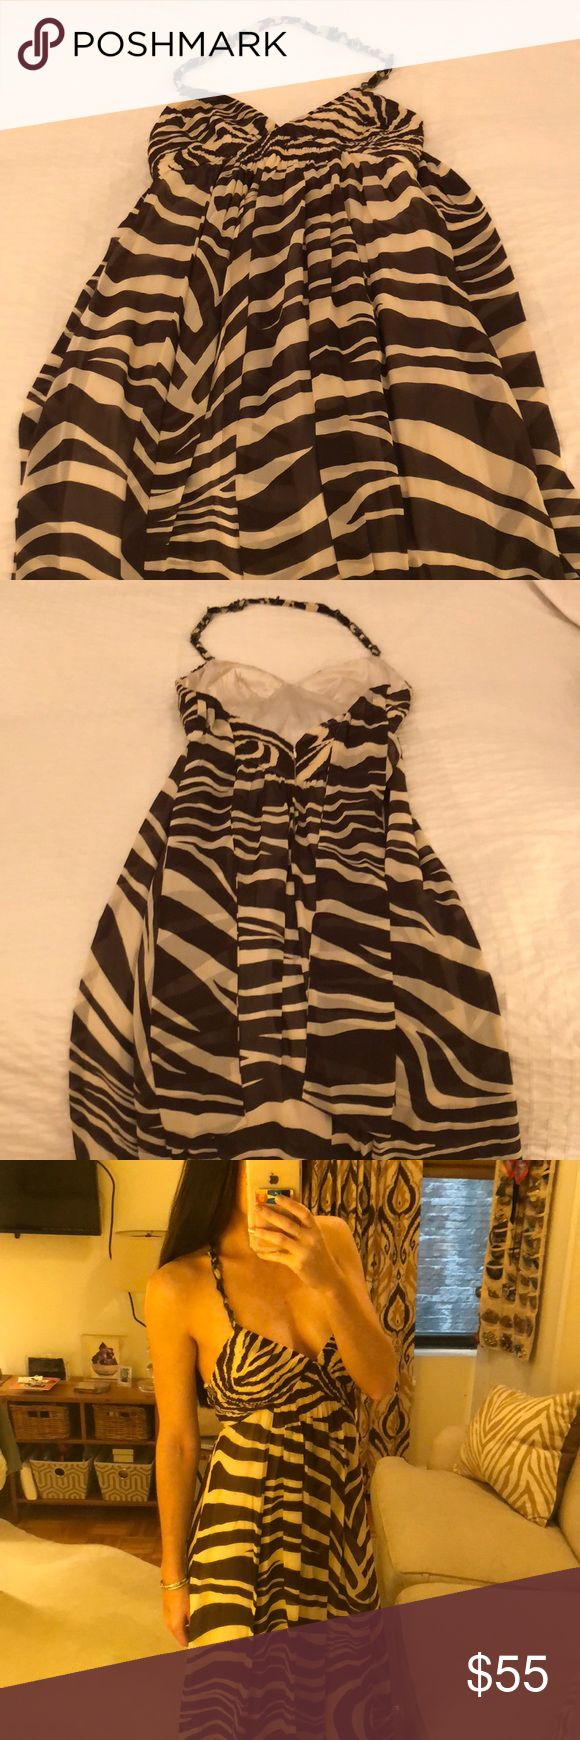 BCBG animal print long dress BCBG Maxazria halter dress is long and flowy and perfect for weddings. The print is super fun as well. BCBGMaxAzria Dresses Maxi